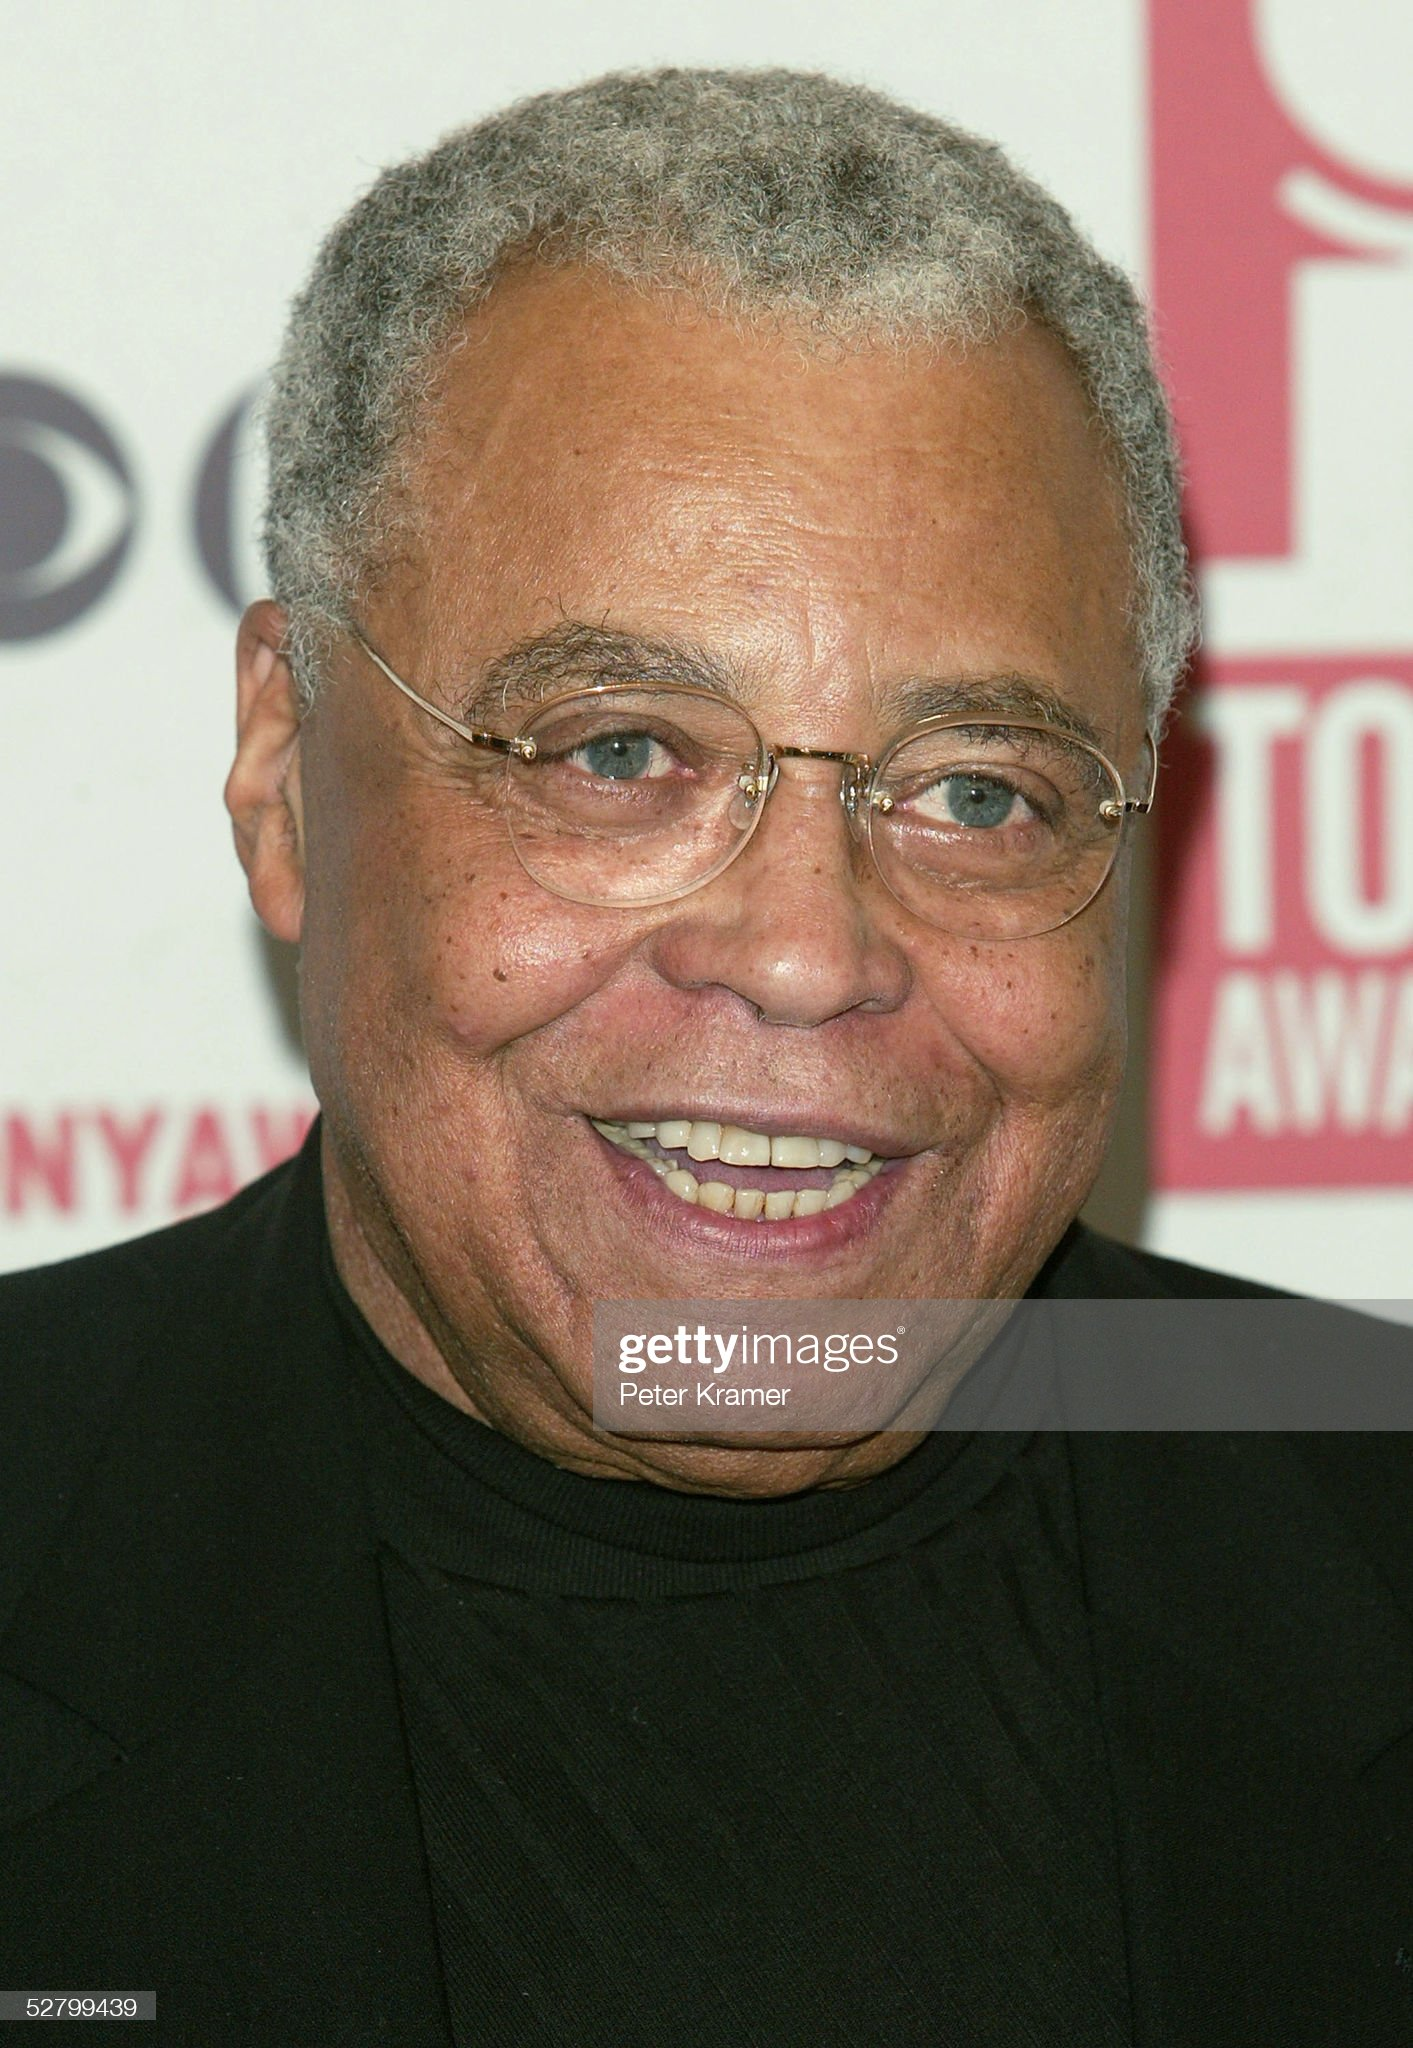 COLOR DE OJOS (clasificación y debate de personas famosas) - Página 11 Actor-james-earl-jones-attends-the-2005-tony-awards-meet-the-nominees-picture-id52799439?s=2048x2048